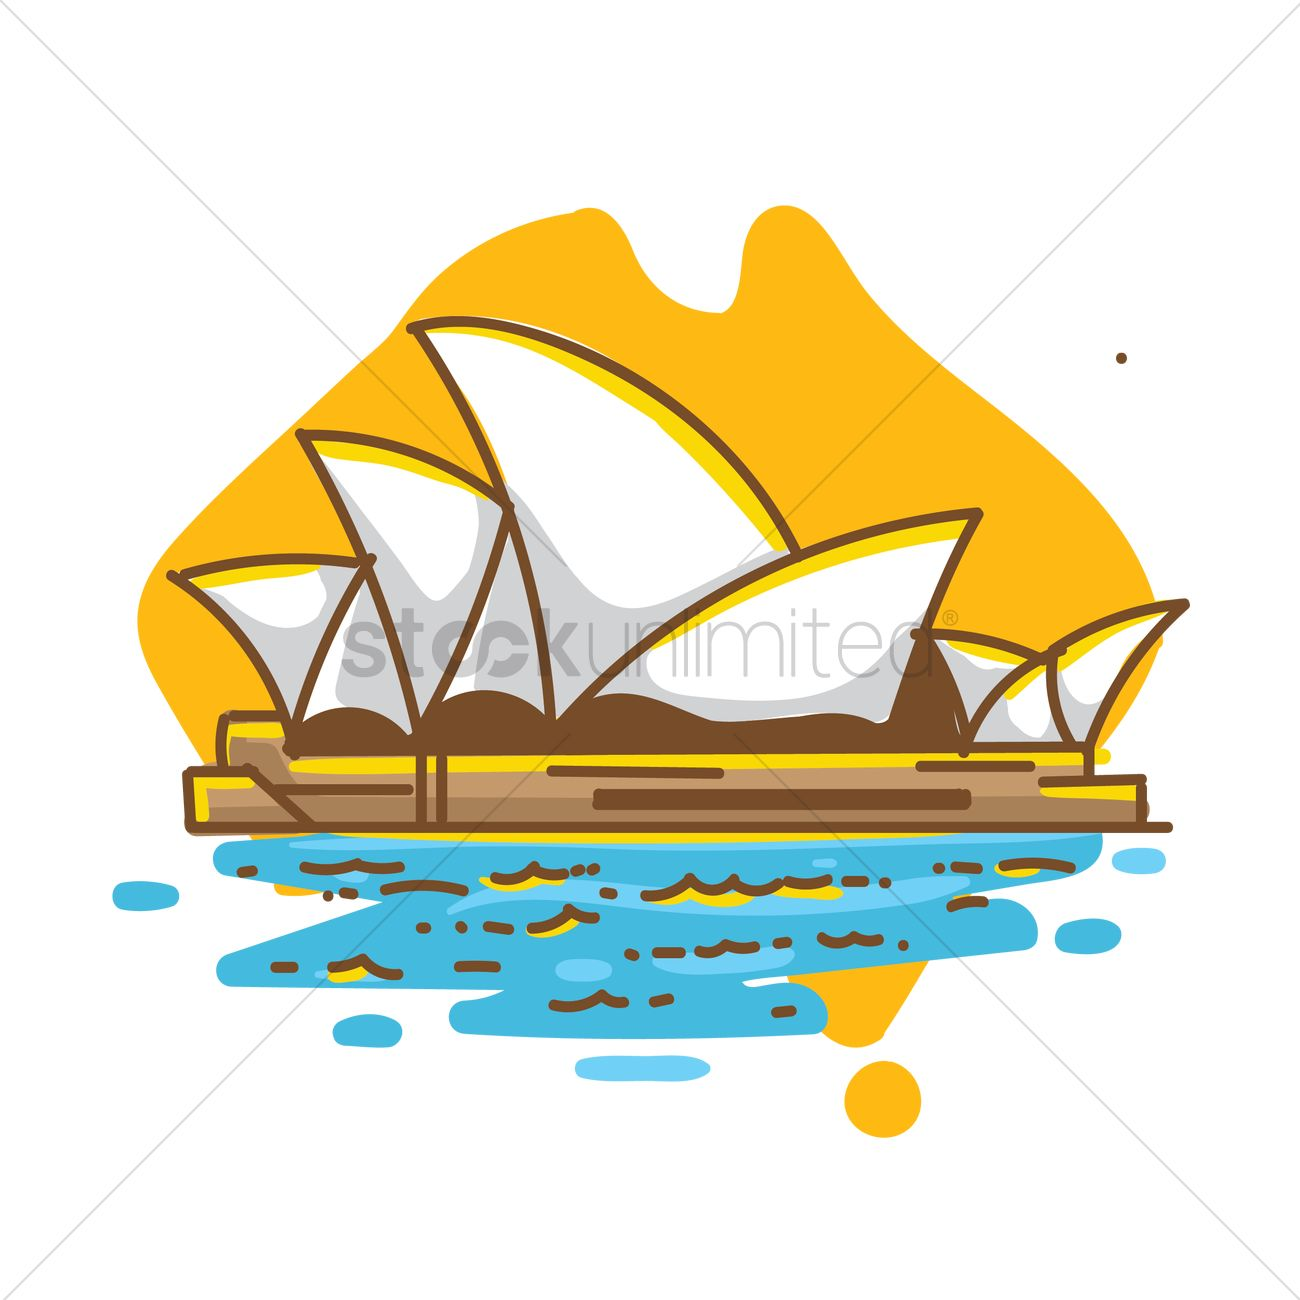 Sydney opera house on australia map Vector Image.